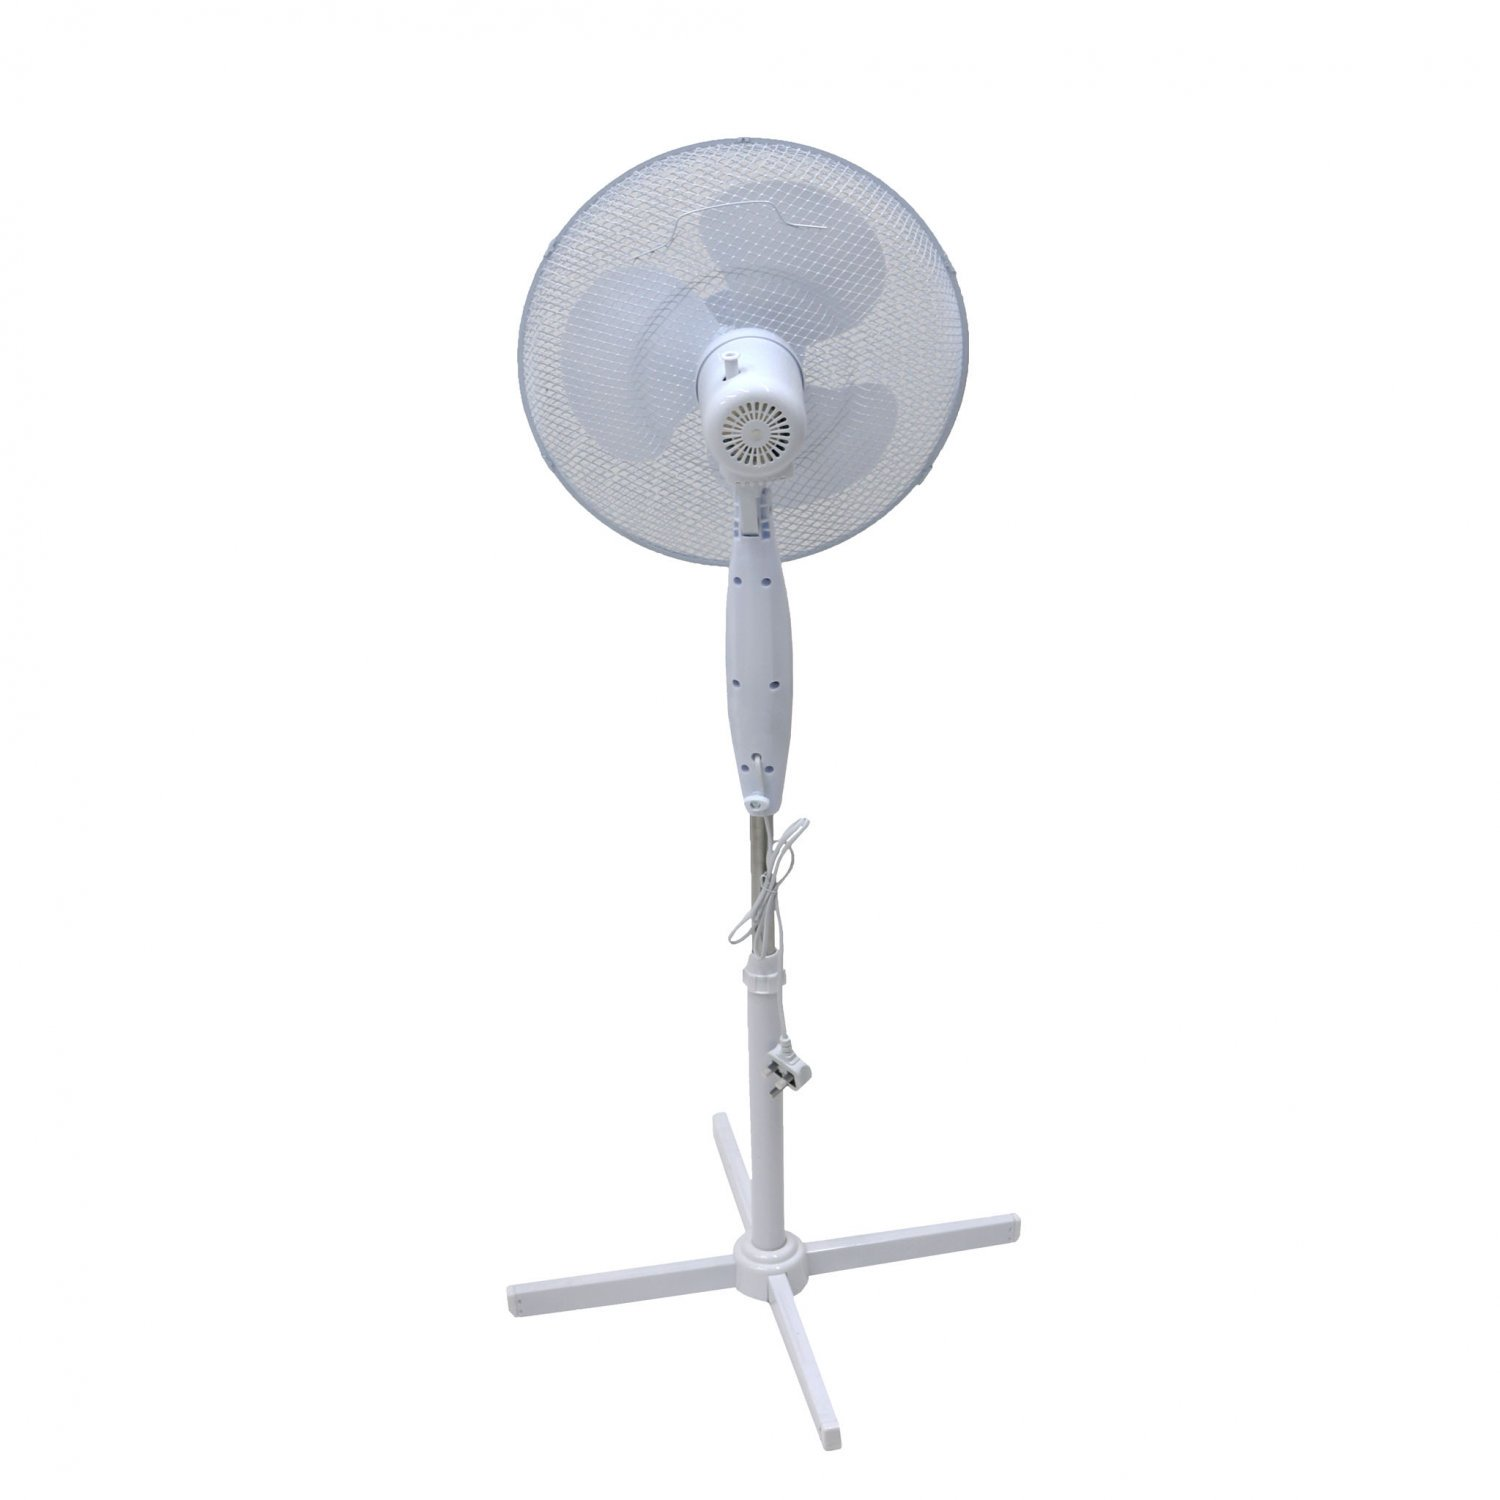 "(RU2) 16"" Oscillating Pedestal Electric Fan The fan head oscillates and tilts which mea... - Image 2 of 2"